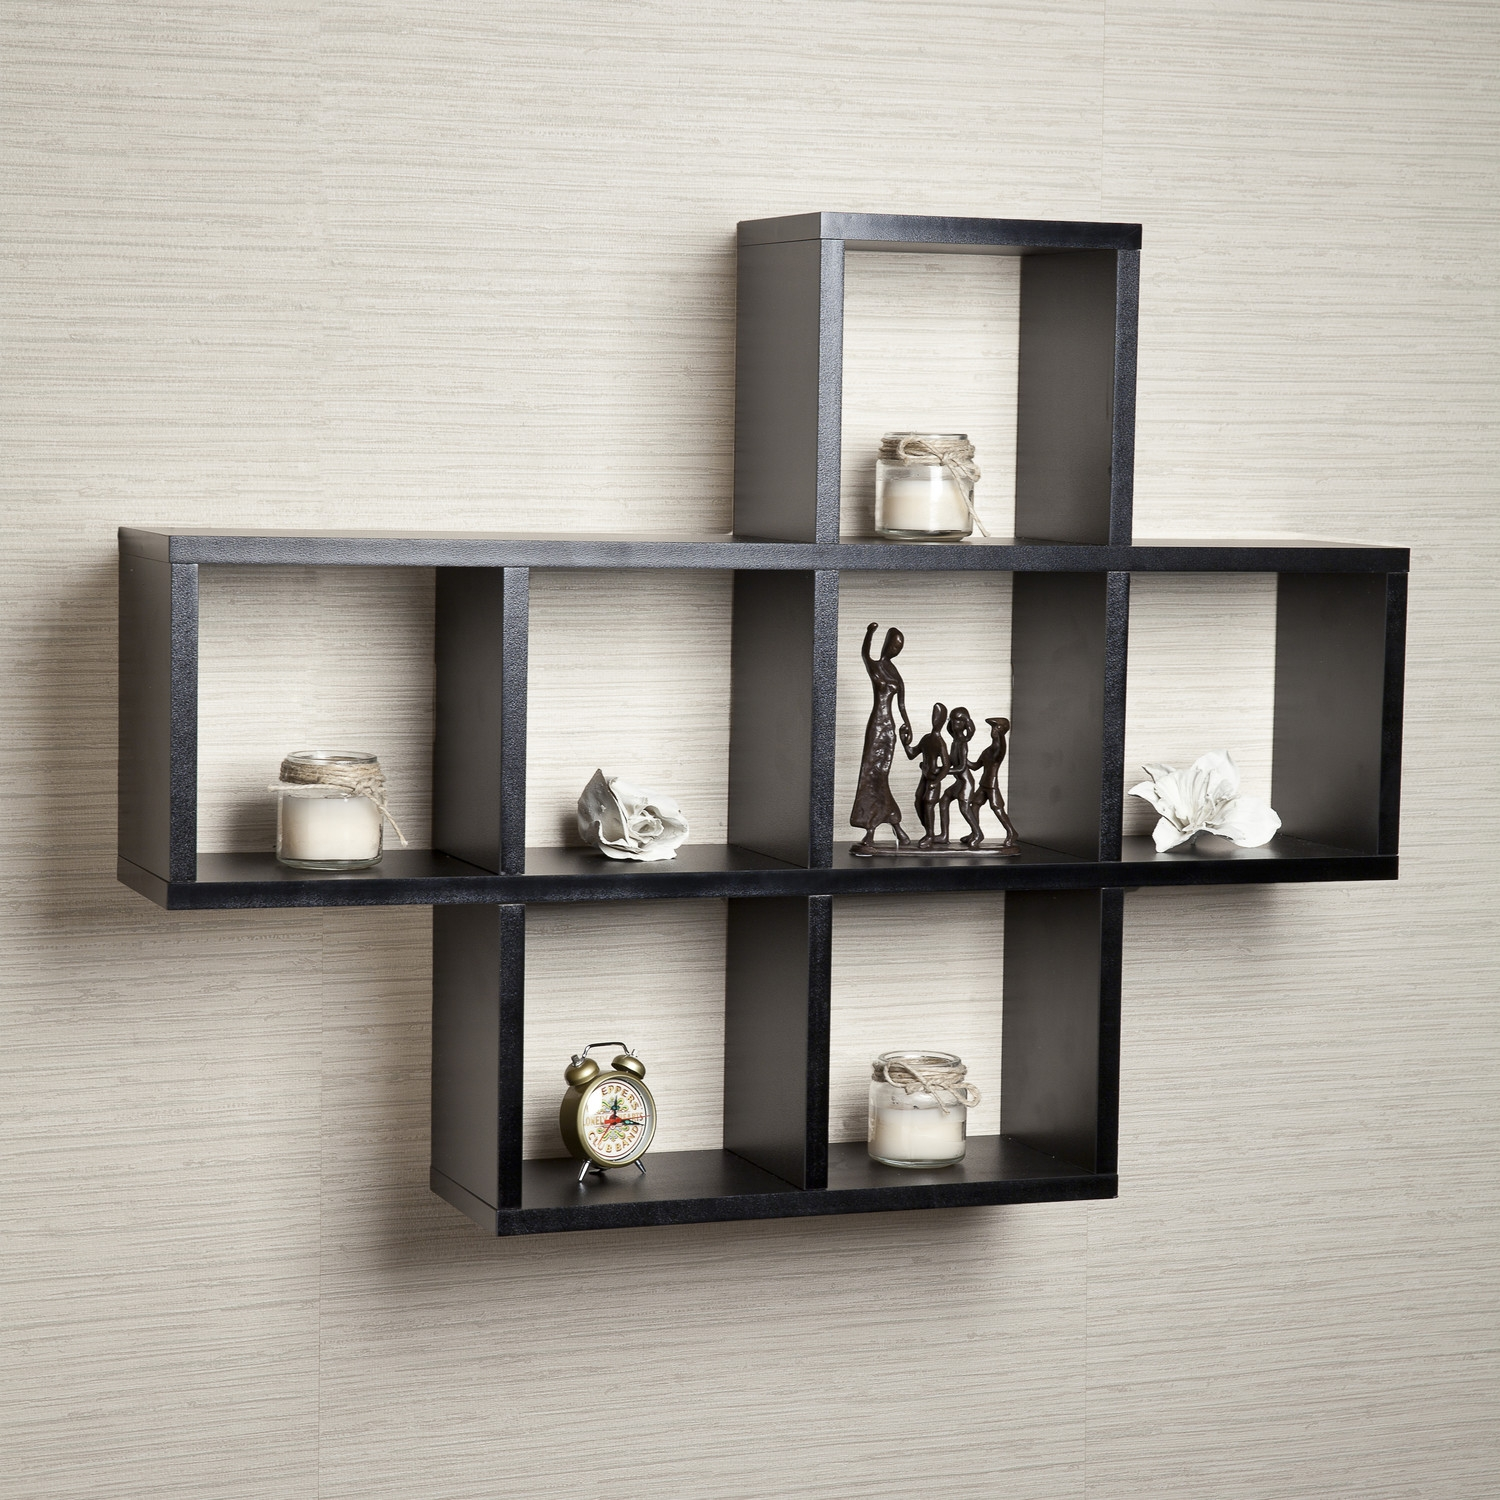 Wall Shelves Design Narrow Wall Shelves For Minimalist Home Decor In Wall Shelf (#9 of 12)